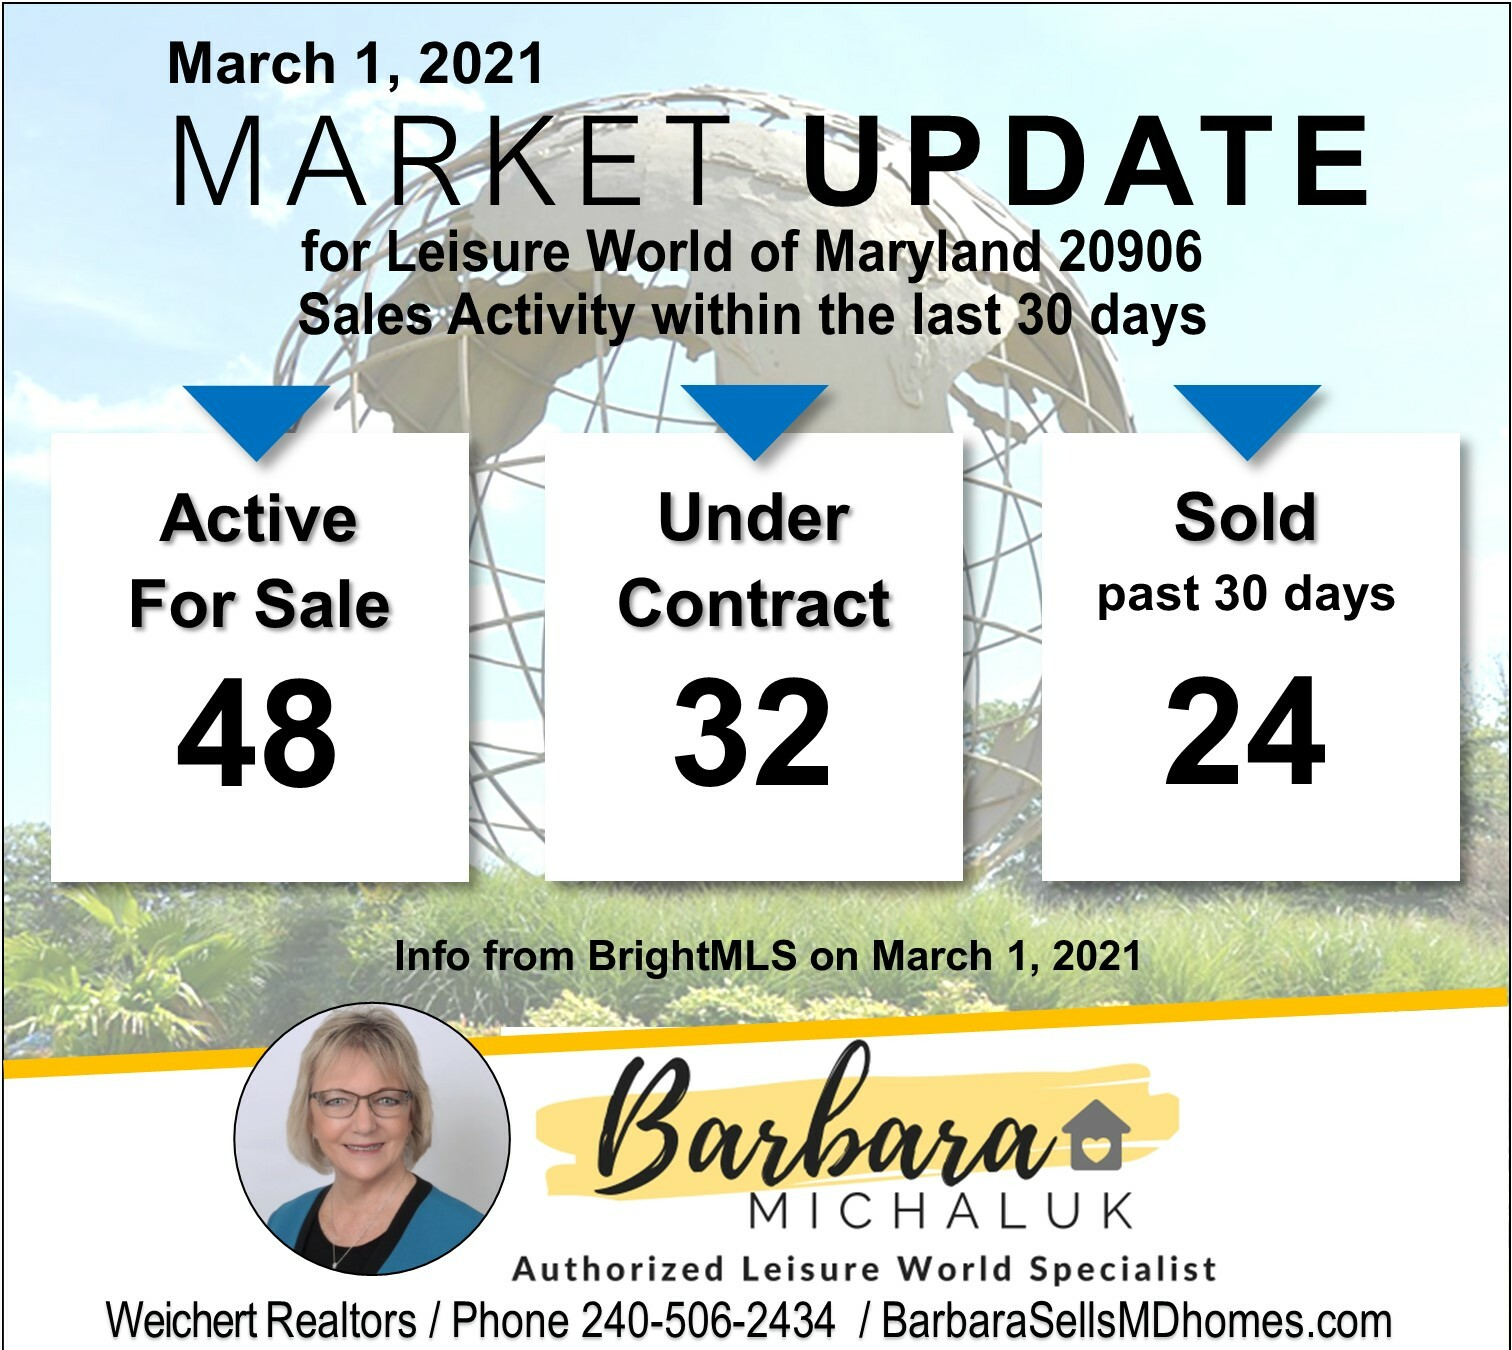 LW Monthly Market Update on March 1 2021